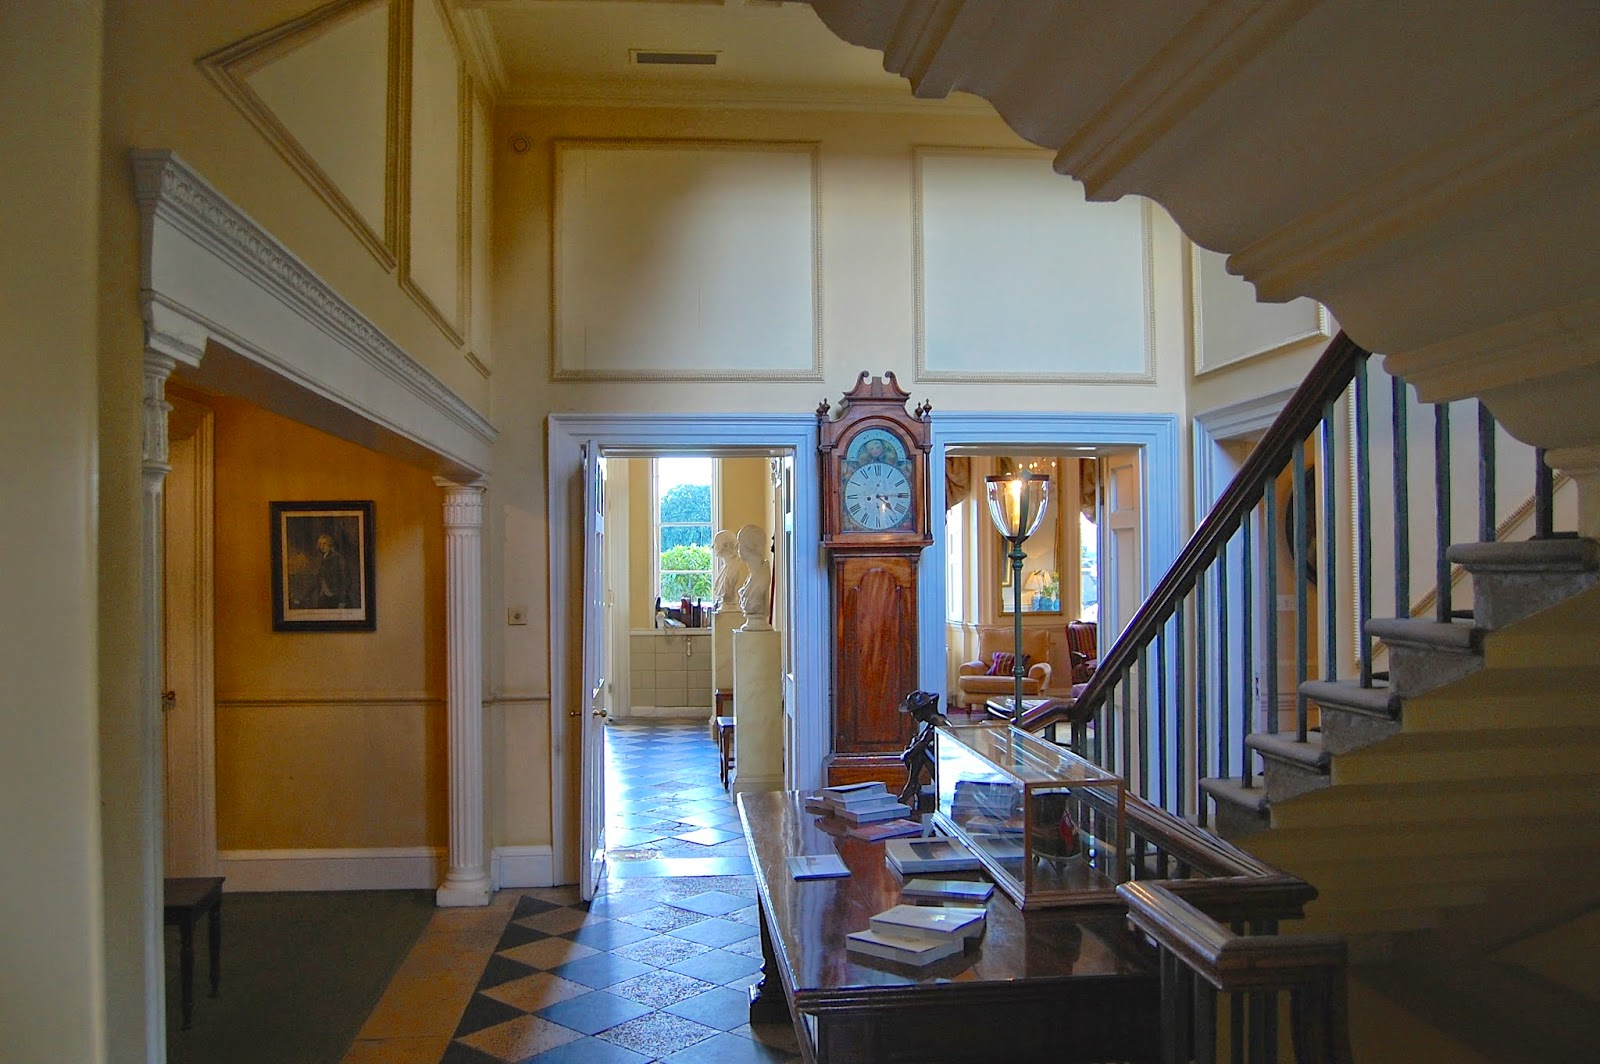 Interior of the Royal Crescent Hotel